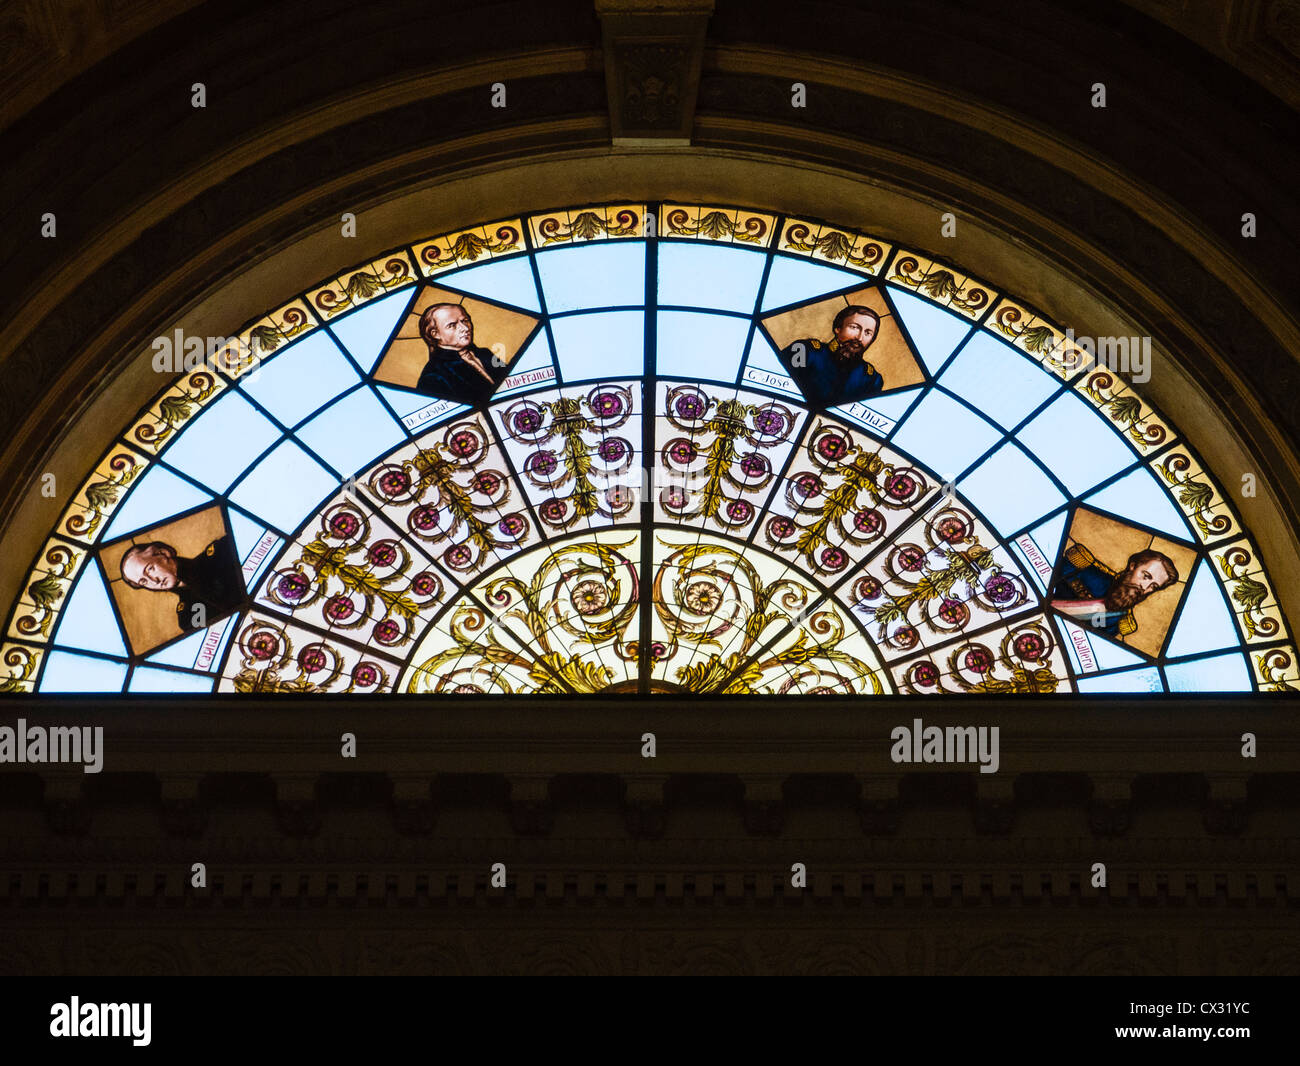 Stained glass window with images of four of the country's heroes at the Pantheon building in Asunción, - Stock Image